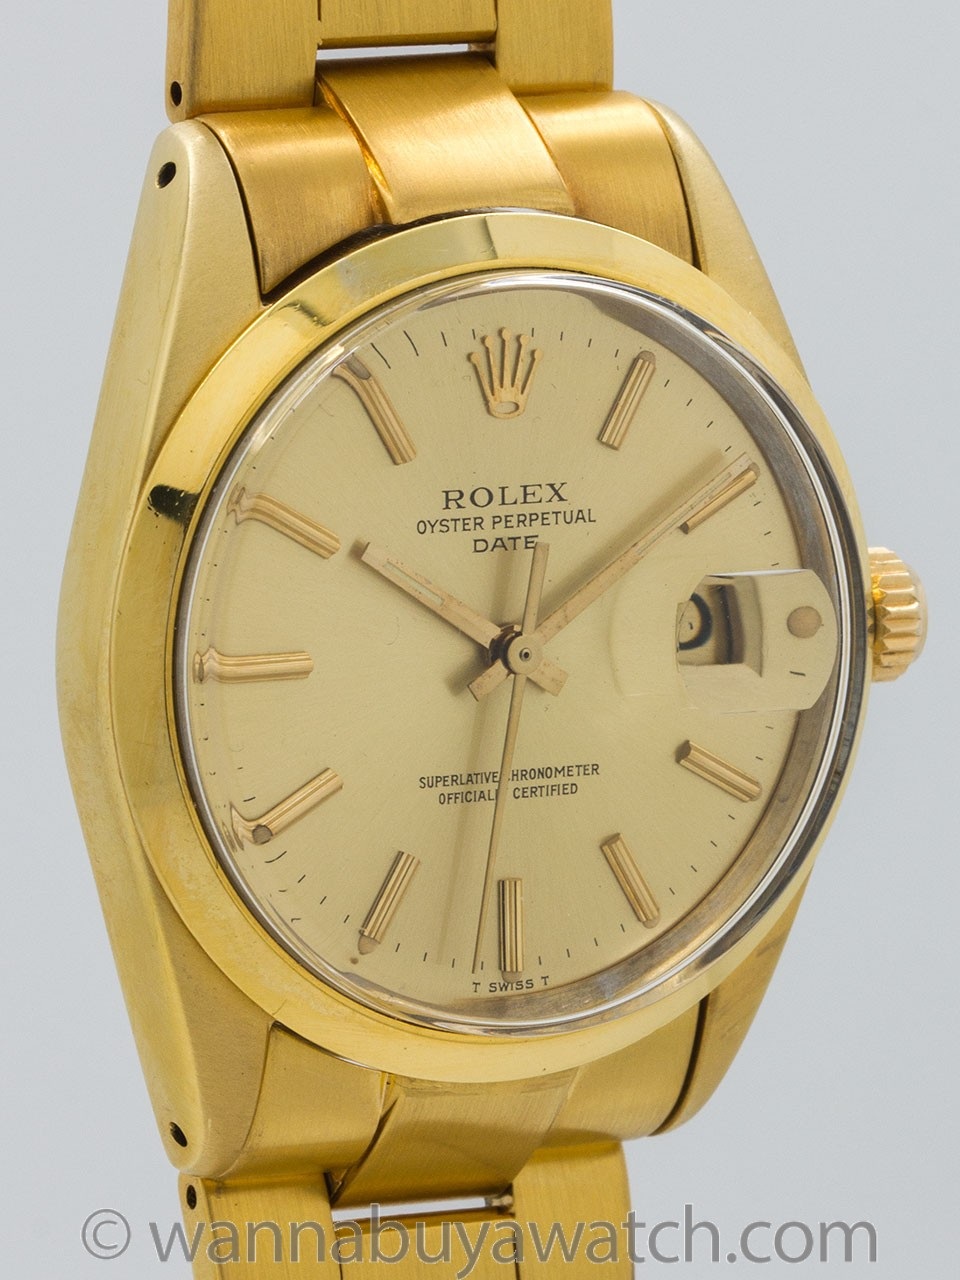 Rolex Oyster Perpetual Date ref 1500 Gold Shell circa 1979